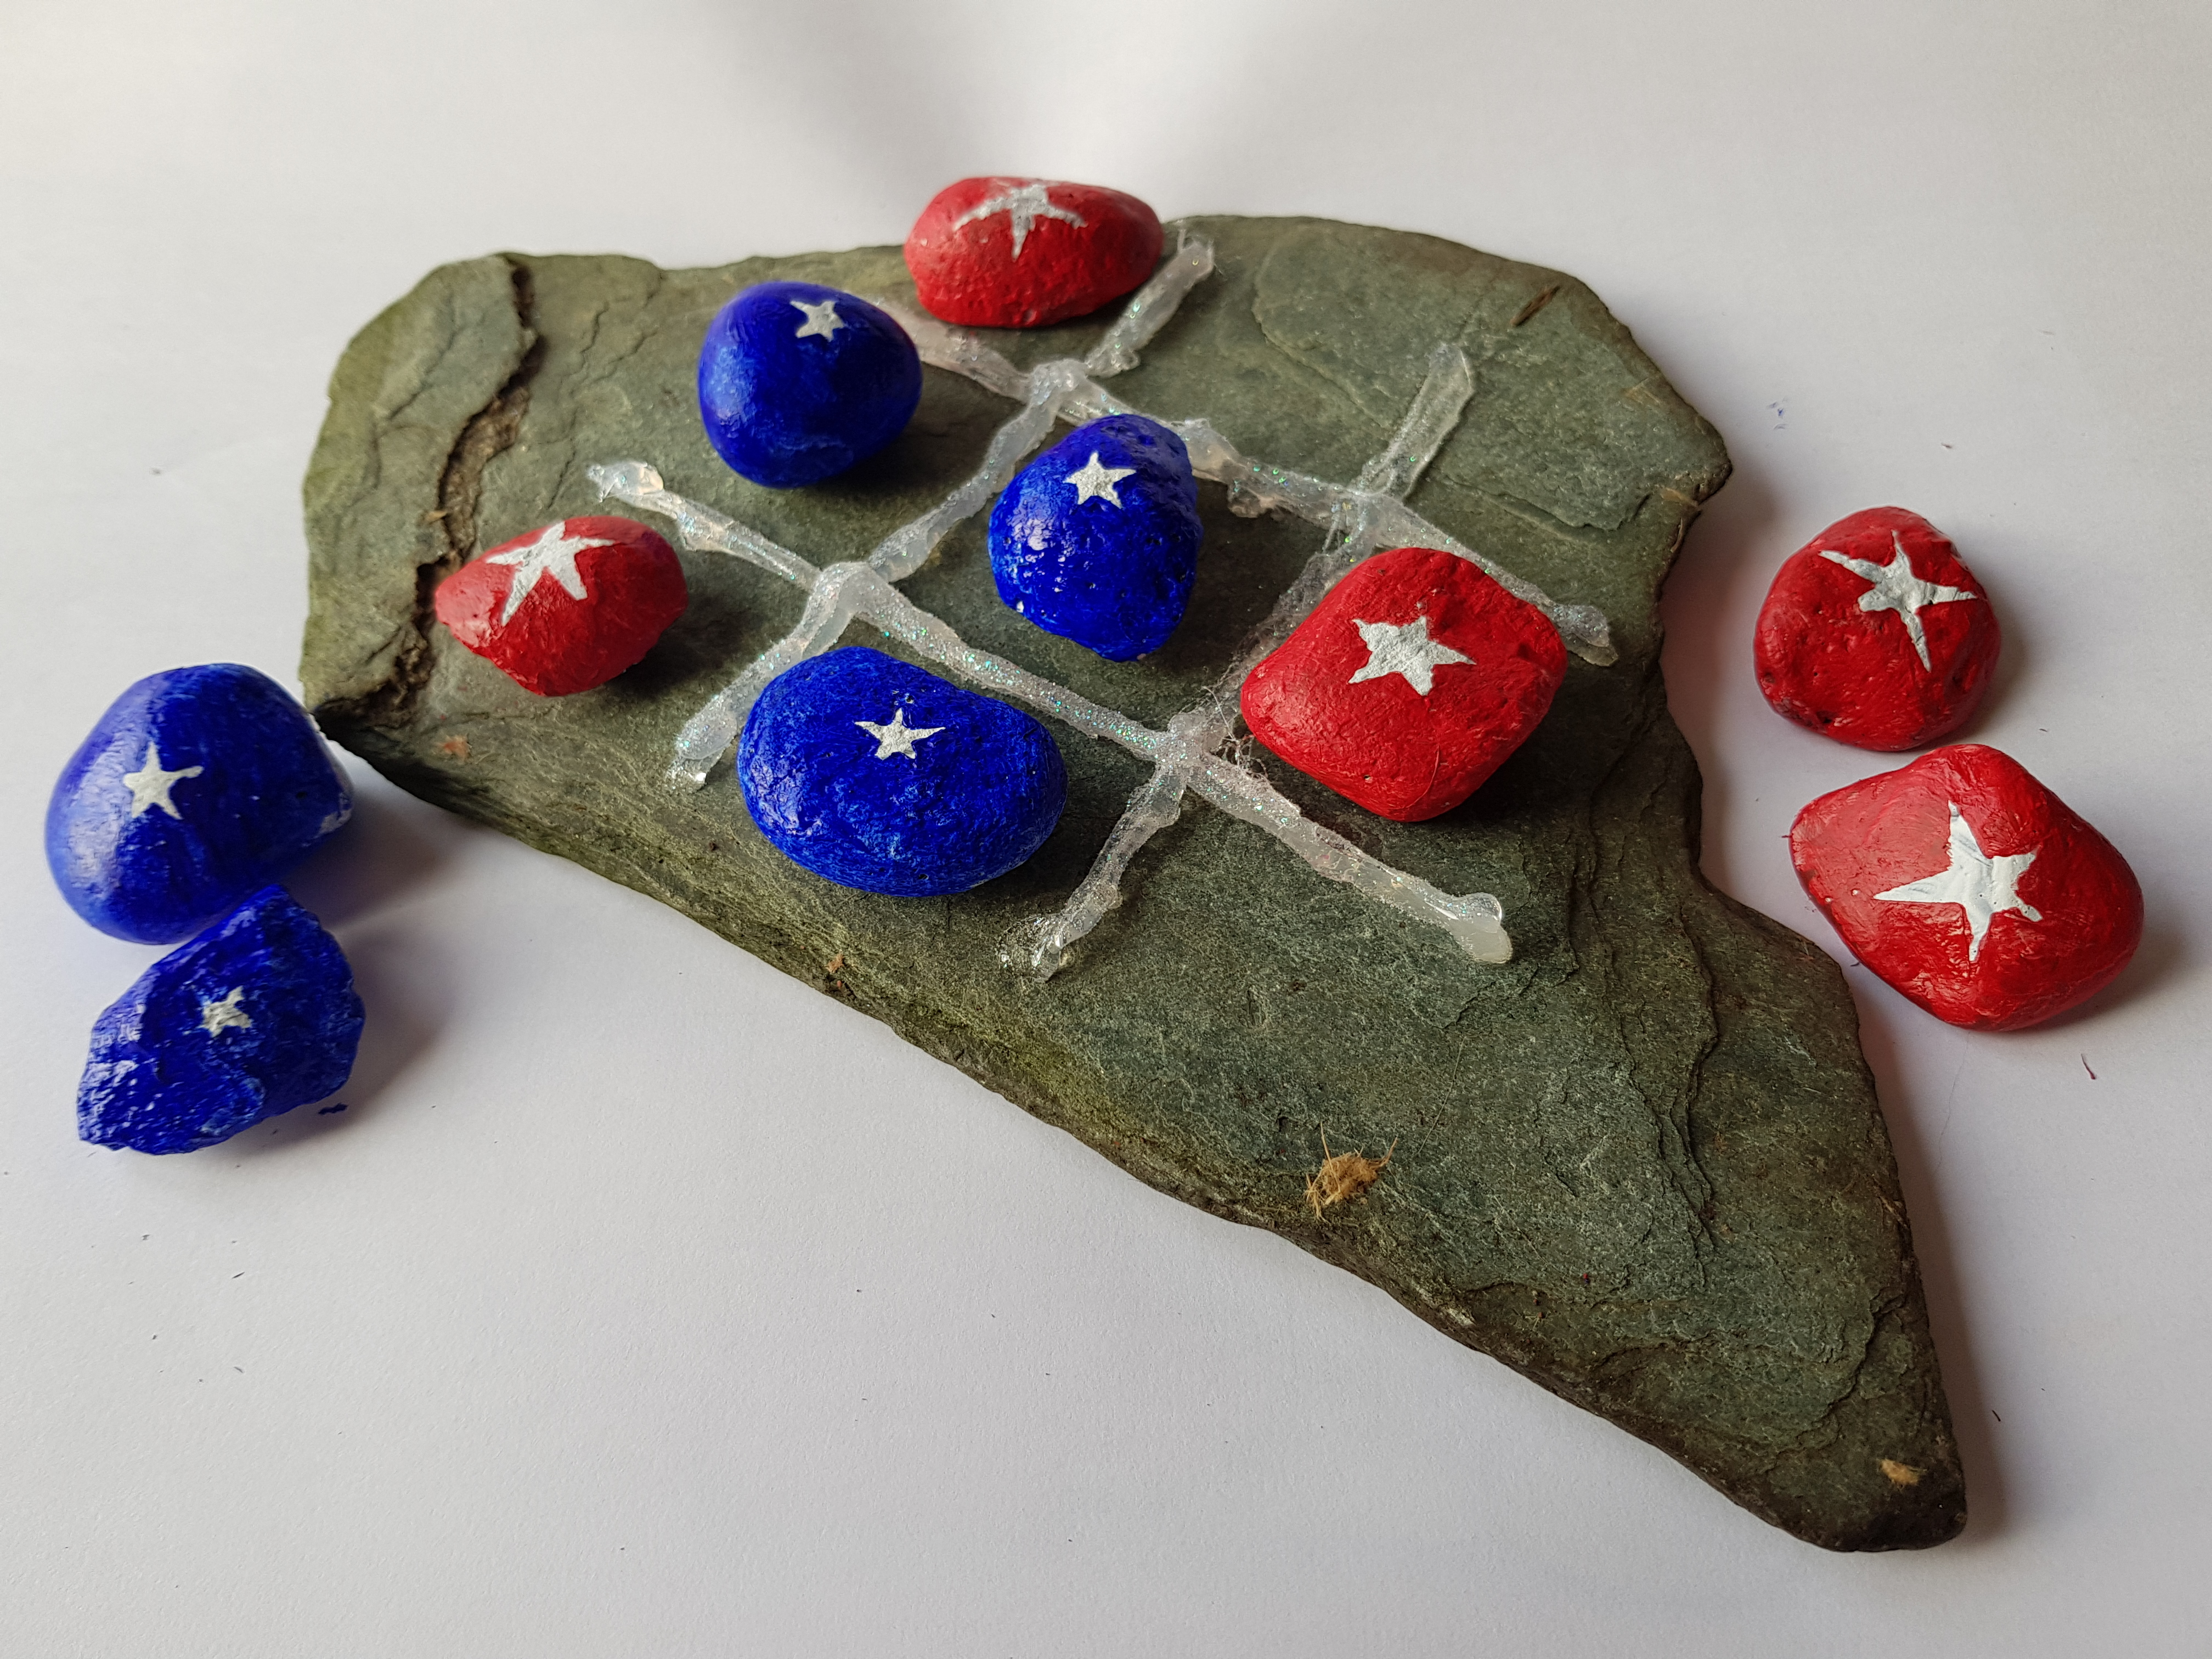 Stone art garden craft for kids. We love fun DIY projects like this. This make a fun garden game using painted pebbles..